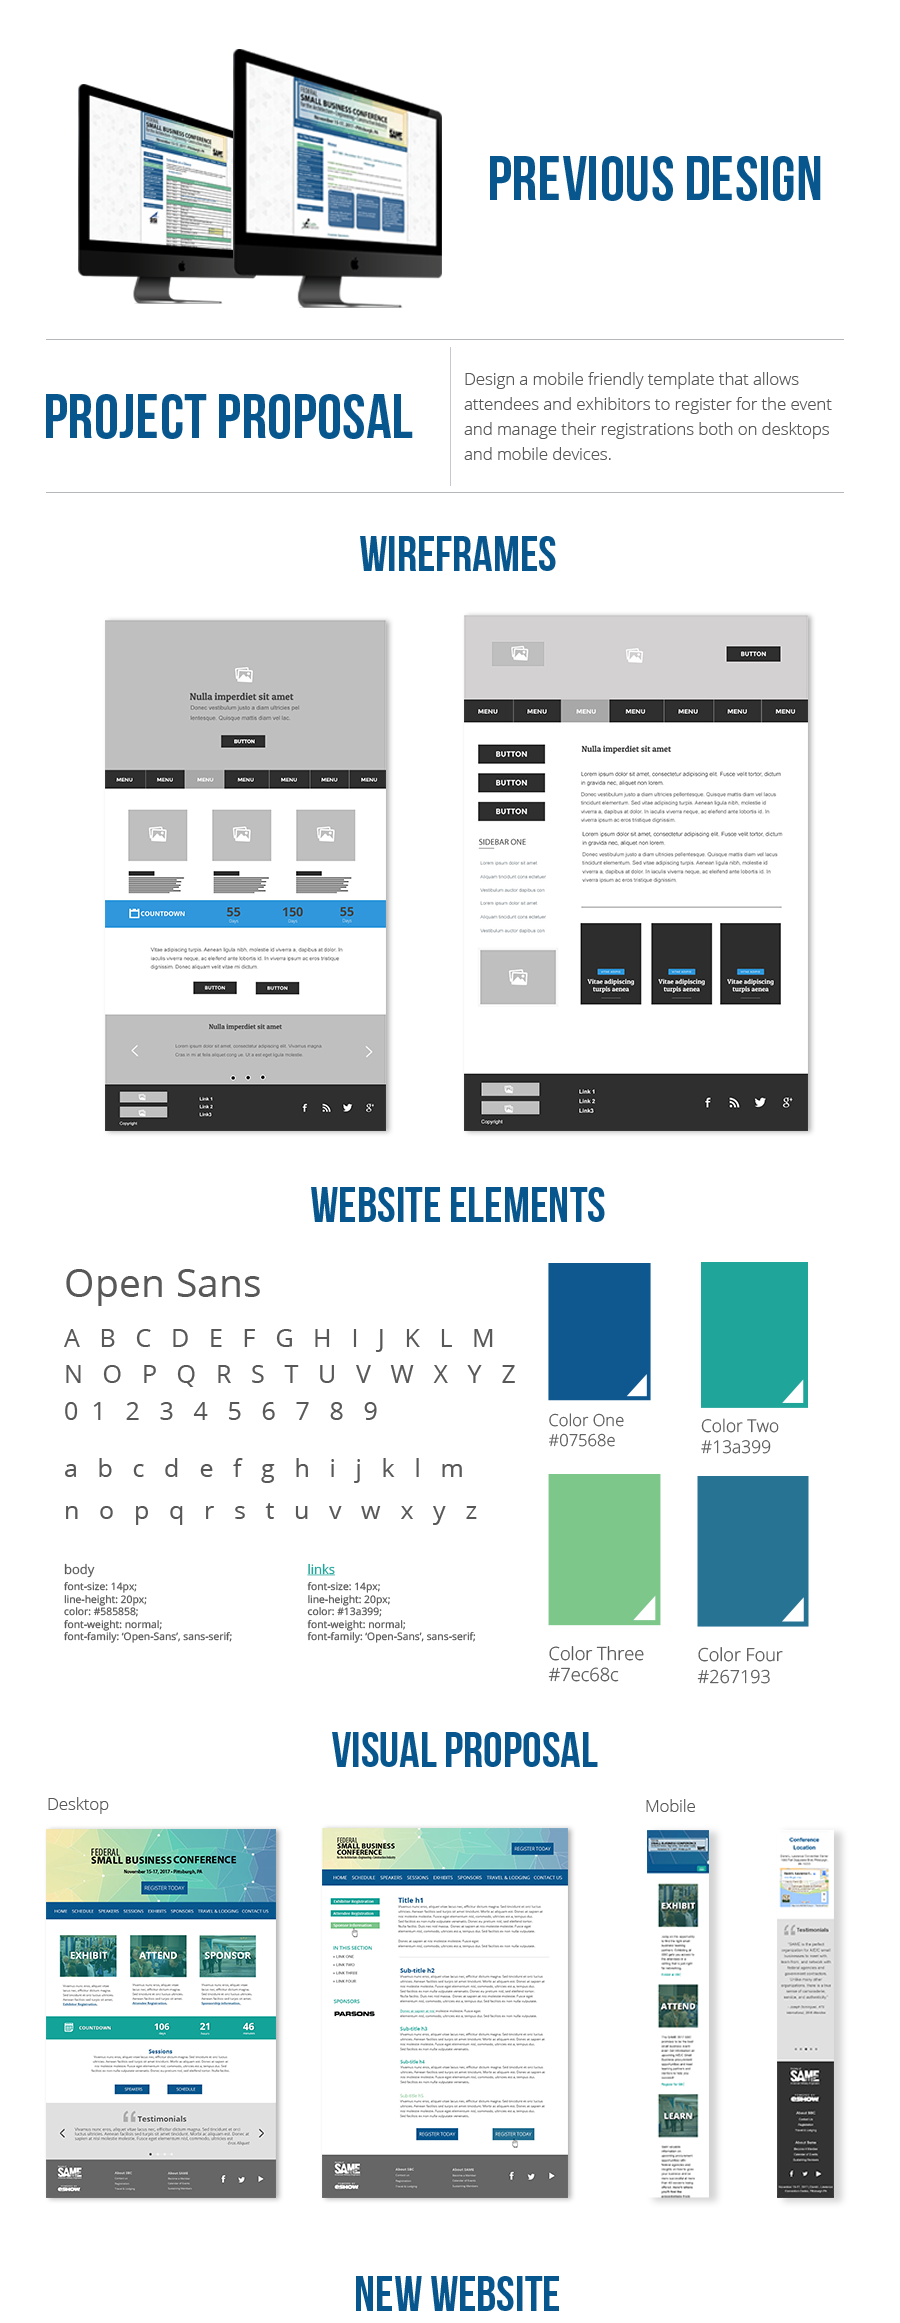 Bruna Siloto Small Business Conference Website Redesign